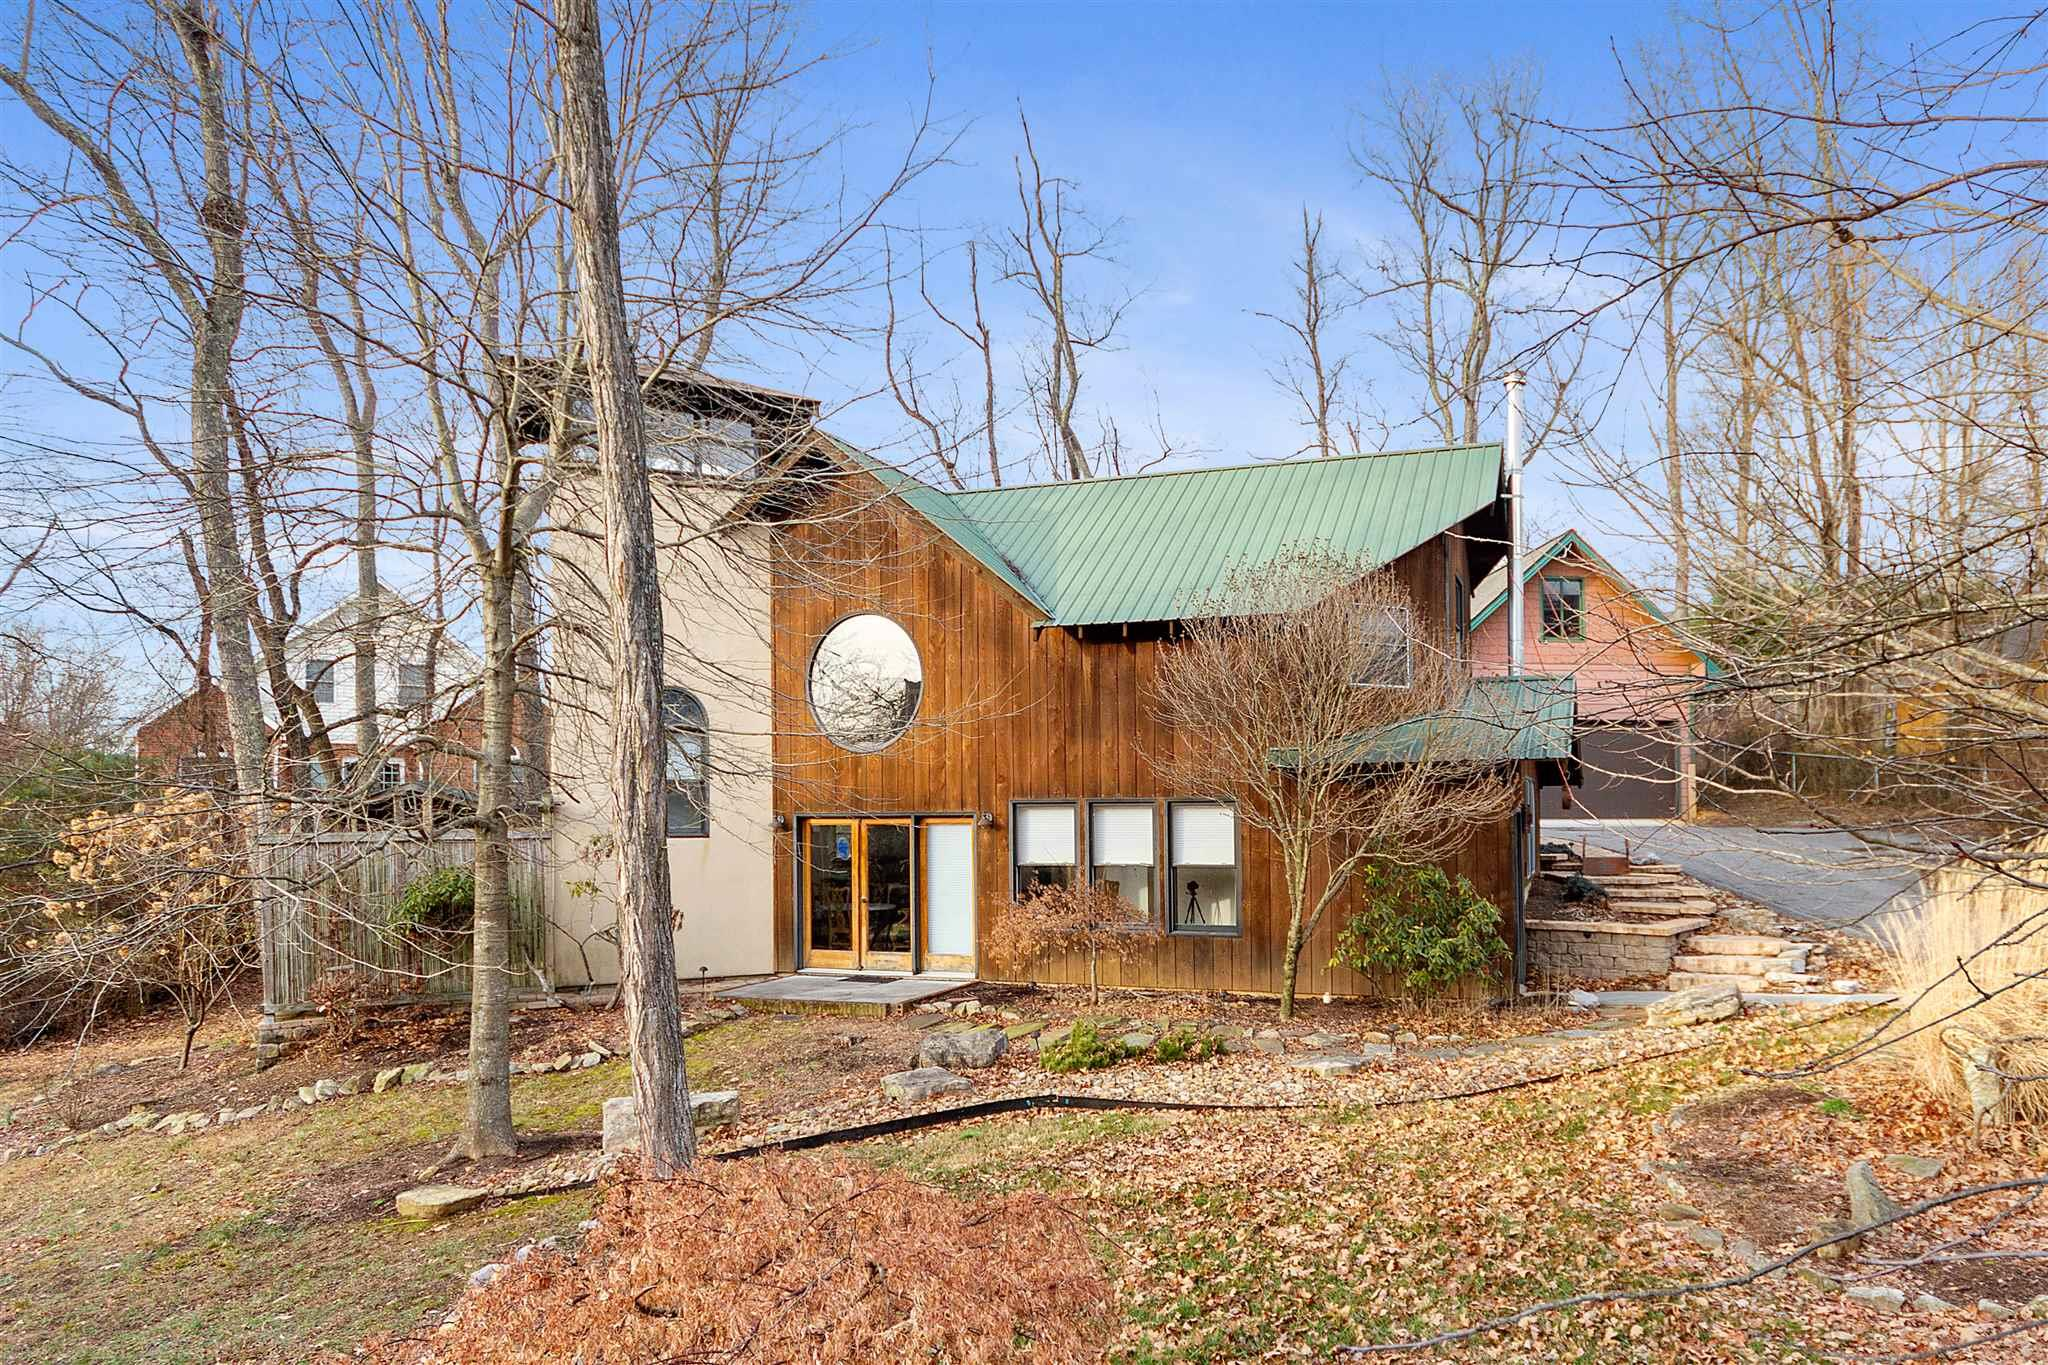 Stunning contemporary on a large lot just minutes from downtown. Enjoy the open floor plan, tons of natural light and hardwoods and tile floors through out. Any chef would be in heaven in the completely renovated gourmet kitchen outfitted with a Wolf induction / gas combo cooktop, built in Thermador fridge, marble counters and a beautiful Maple bar top. Keep your feet warm while you cook with the heated tile floors. On the main floor is the master suite with a wood burning stove and an impressive master bath with dual sinks, granite, a towel warmer and custom dual head shower. Upstairs you will find the other two bedrooms and a large bathroom with a claw foot tub. The entire yard has been thoughtfully landscaped. Plenty of storage above the garage.